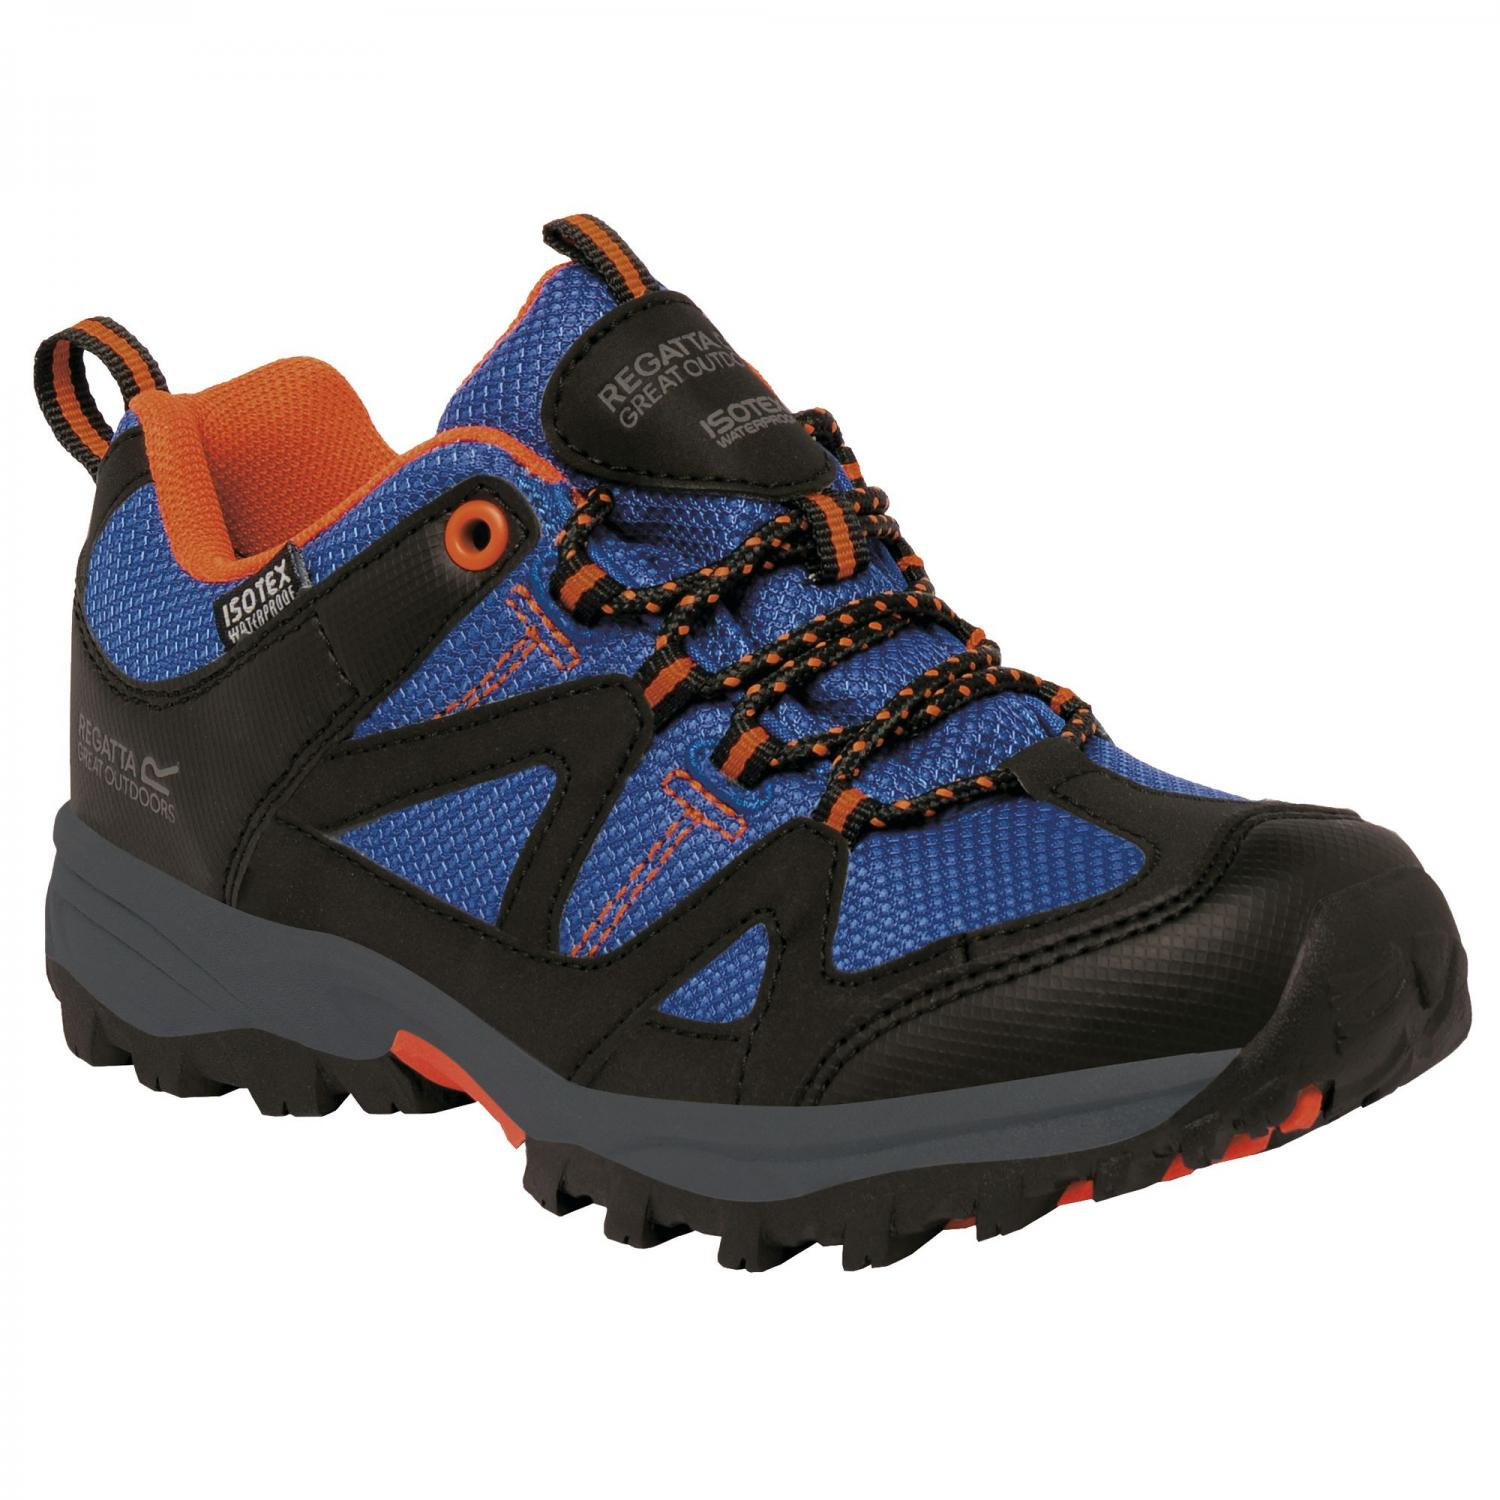 Gatlin Low Junior Walking Shoe Blue Orange